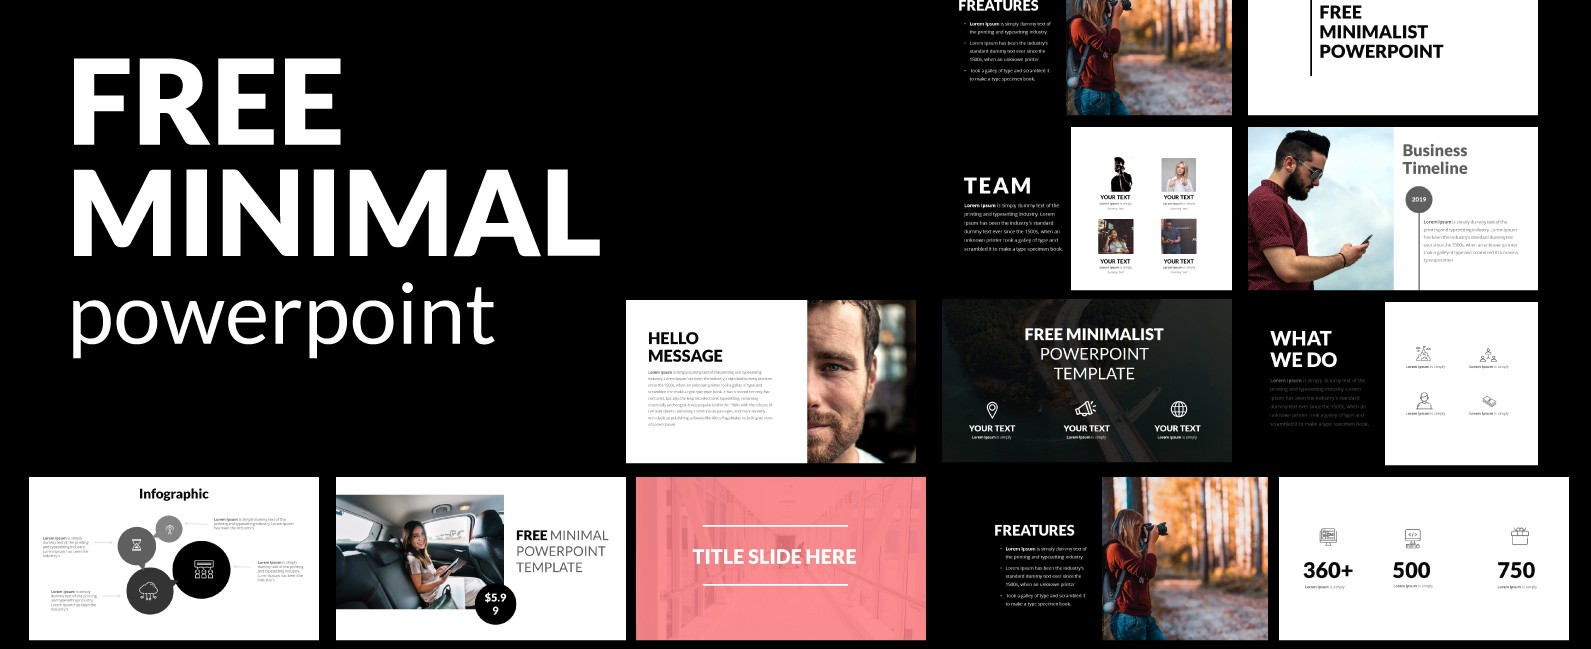 Minimalist Powerpoint Template Free Thecreativenext Medium